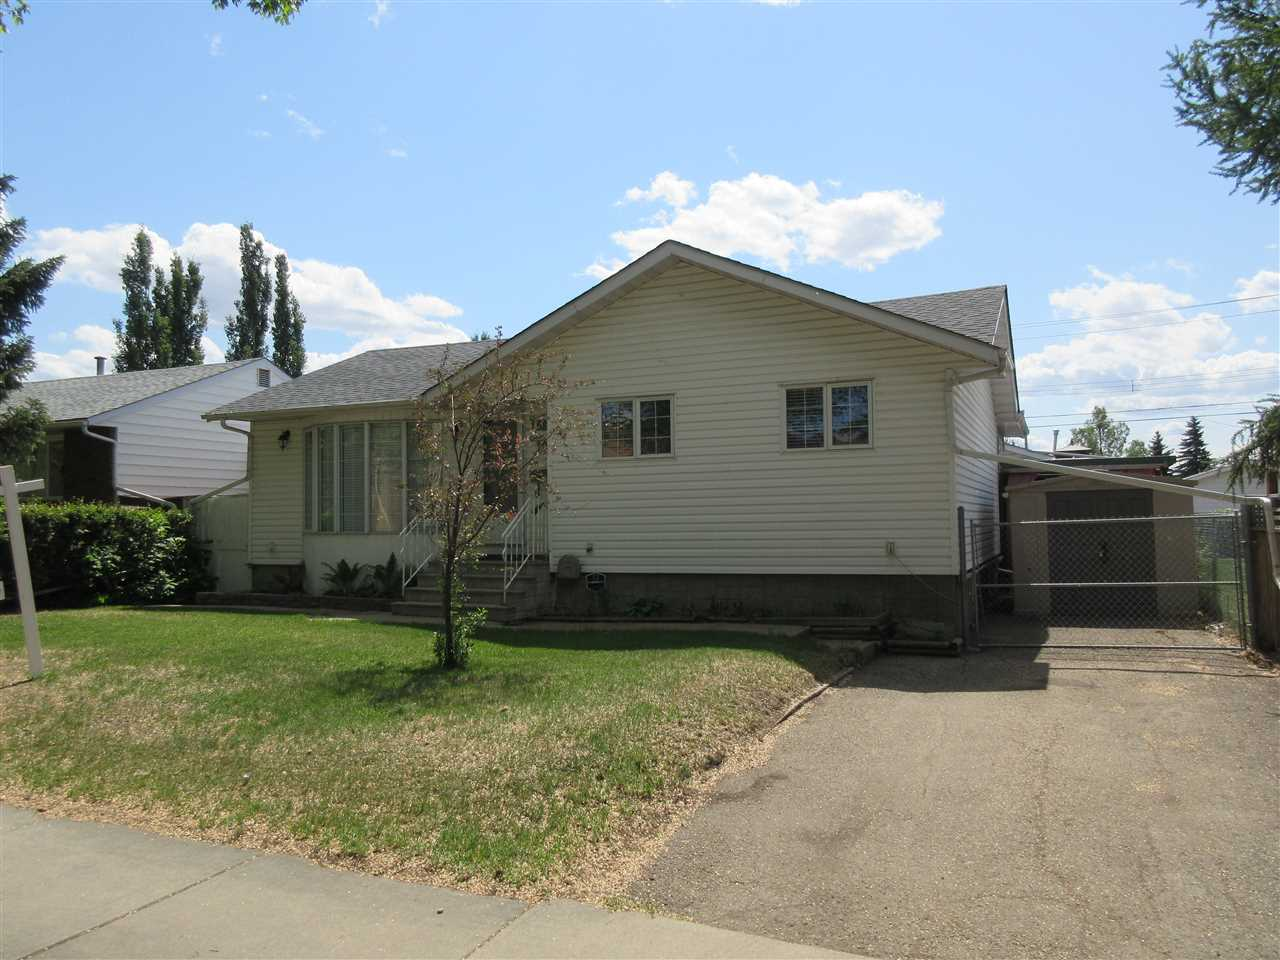 15861 109 Avenue NW, 3 bed, 2 bath, at $414,900